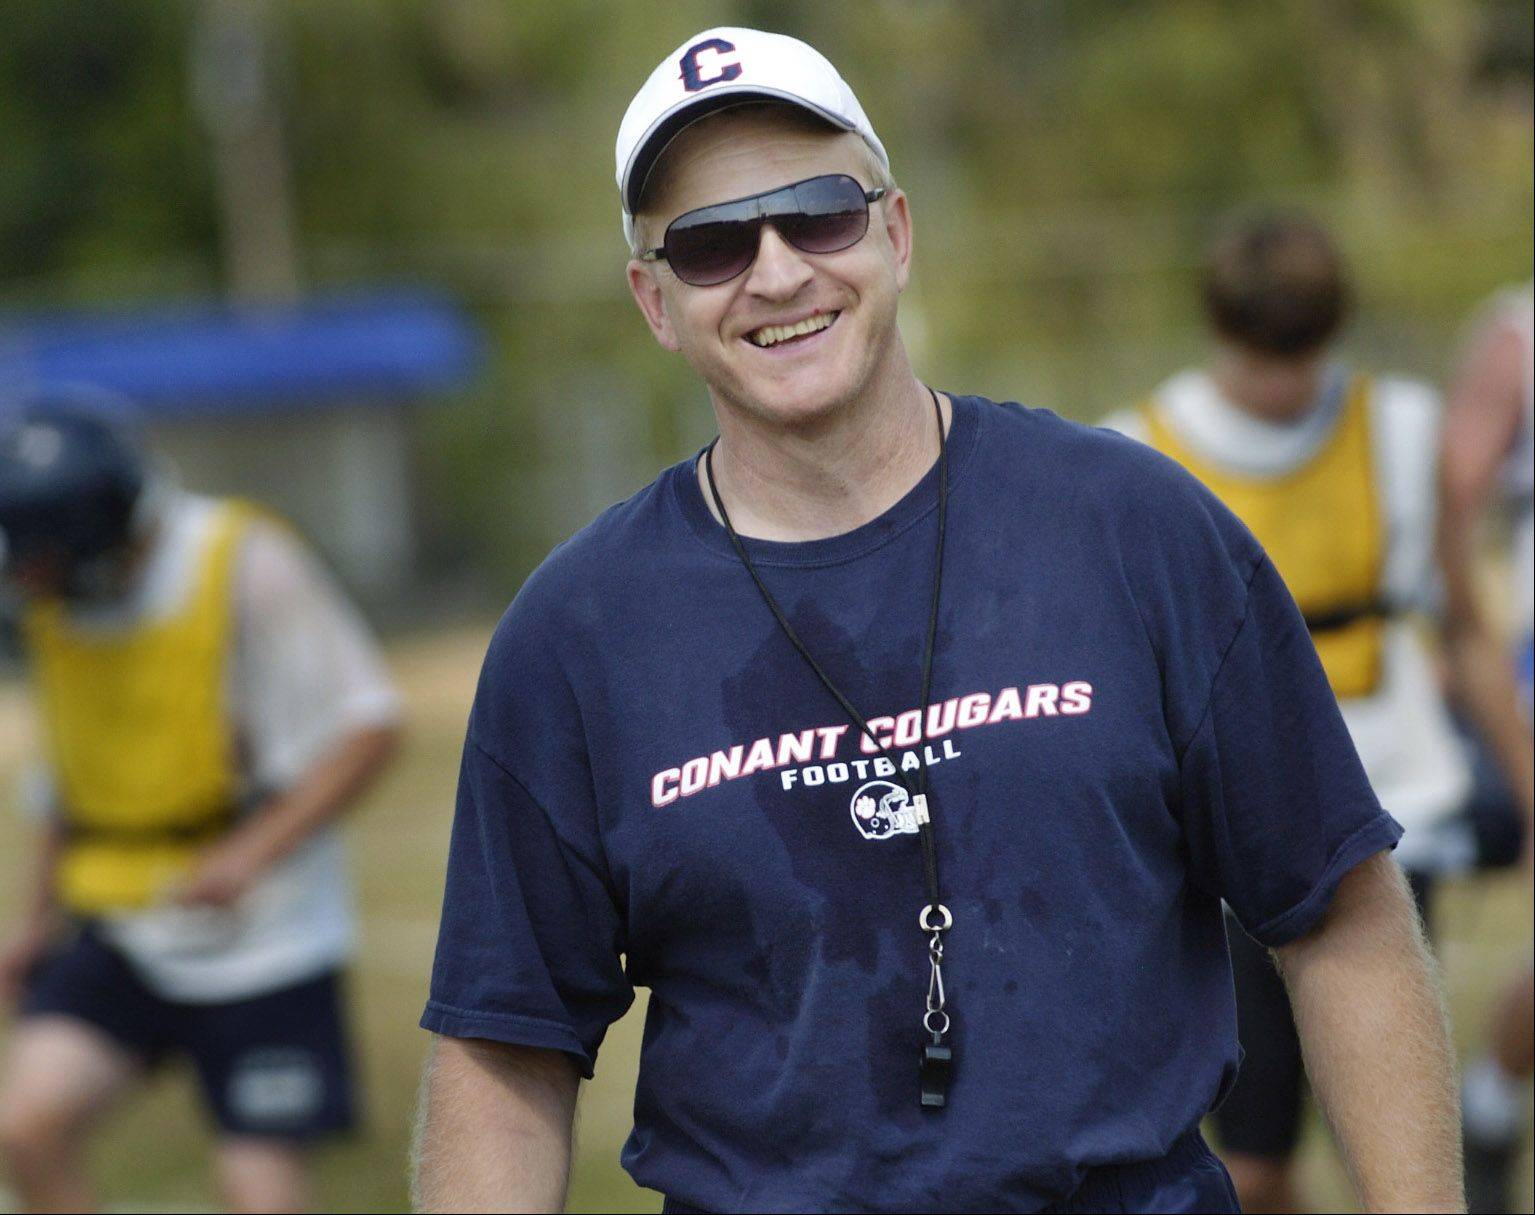 Coach Bill Modelski is enjoying a 3-0 start for the Conant team which features his senior son Danny at quarterback.